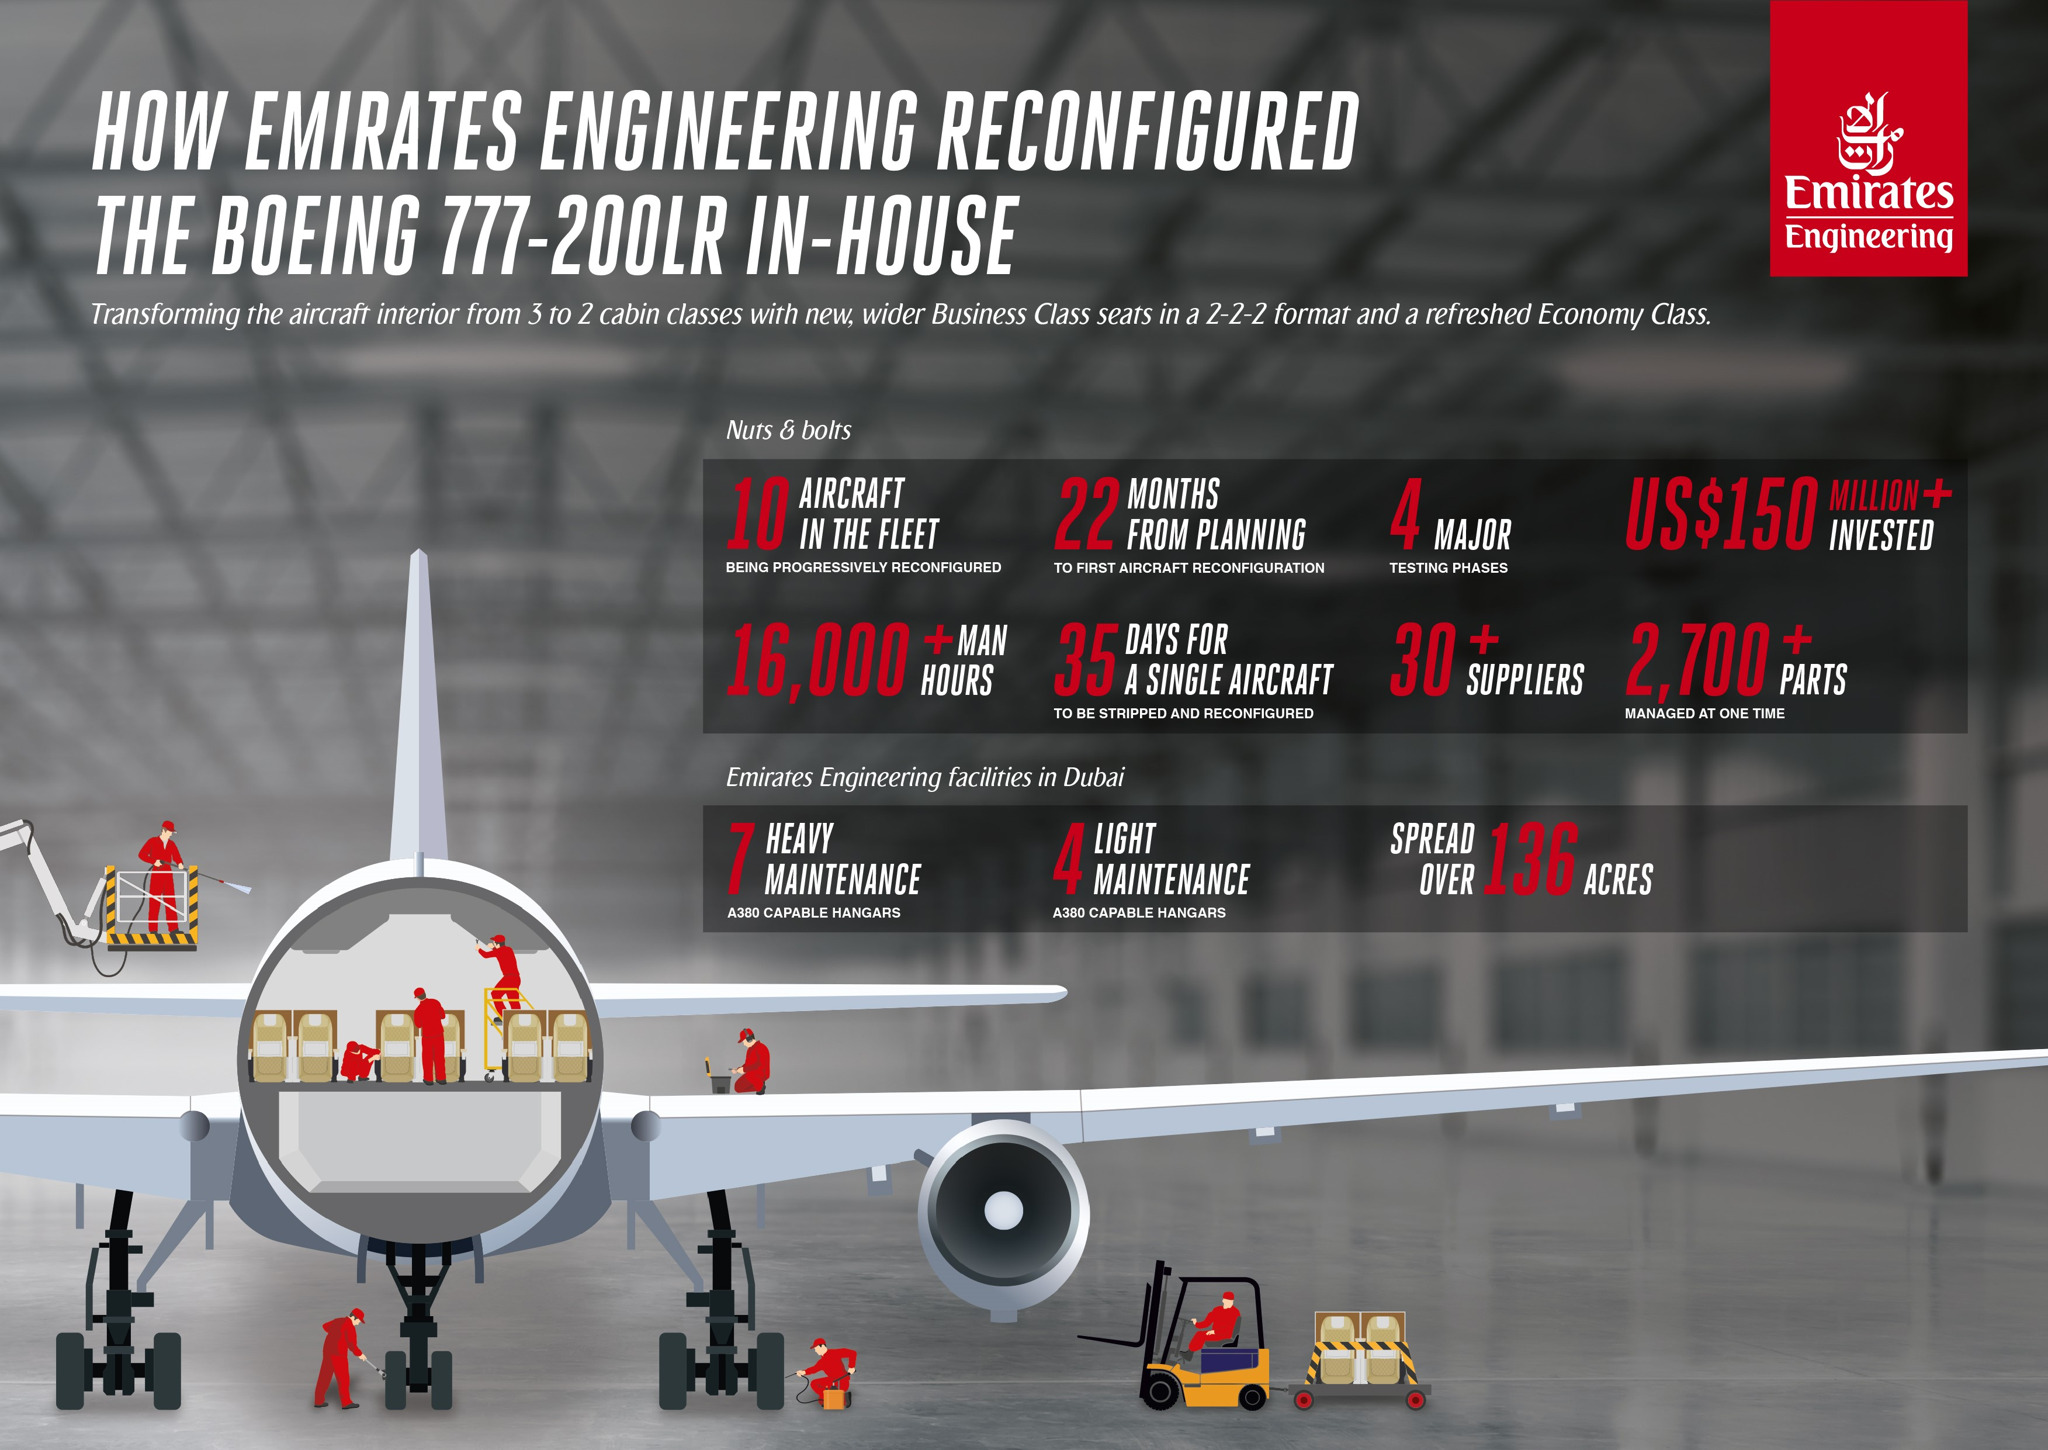 Emirates Engineering Reconfigures Second Boeing 777 200lr Aircraft